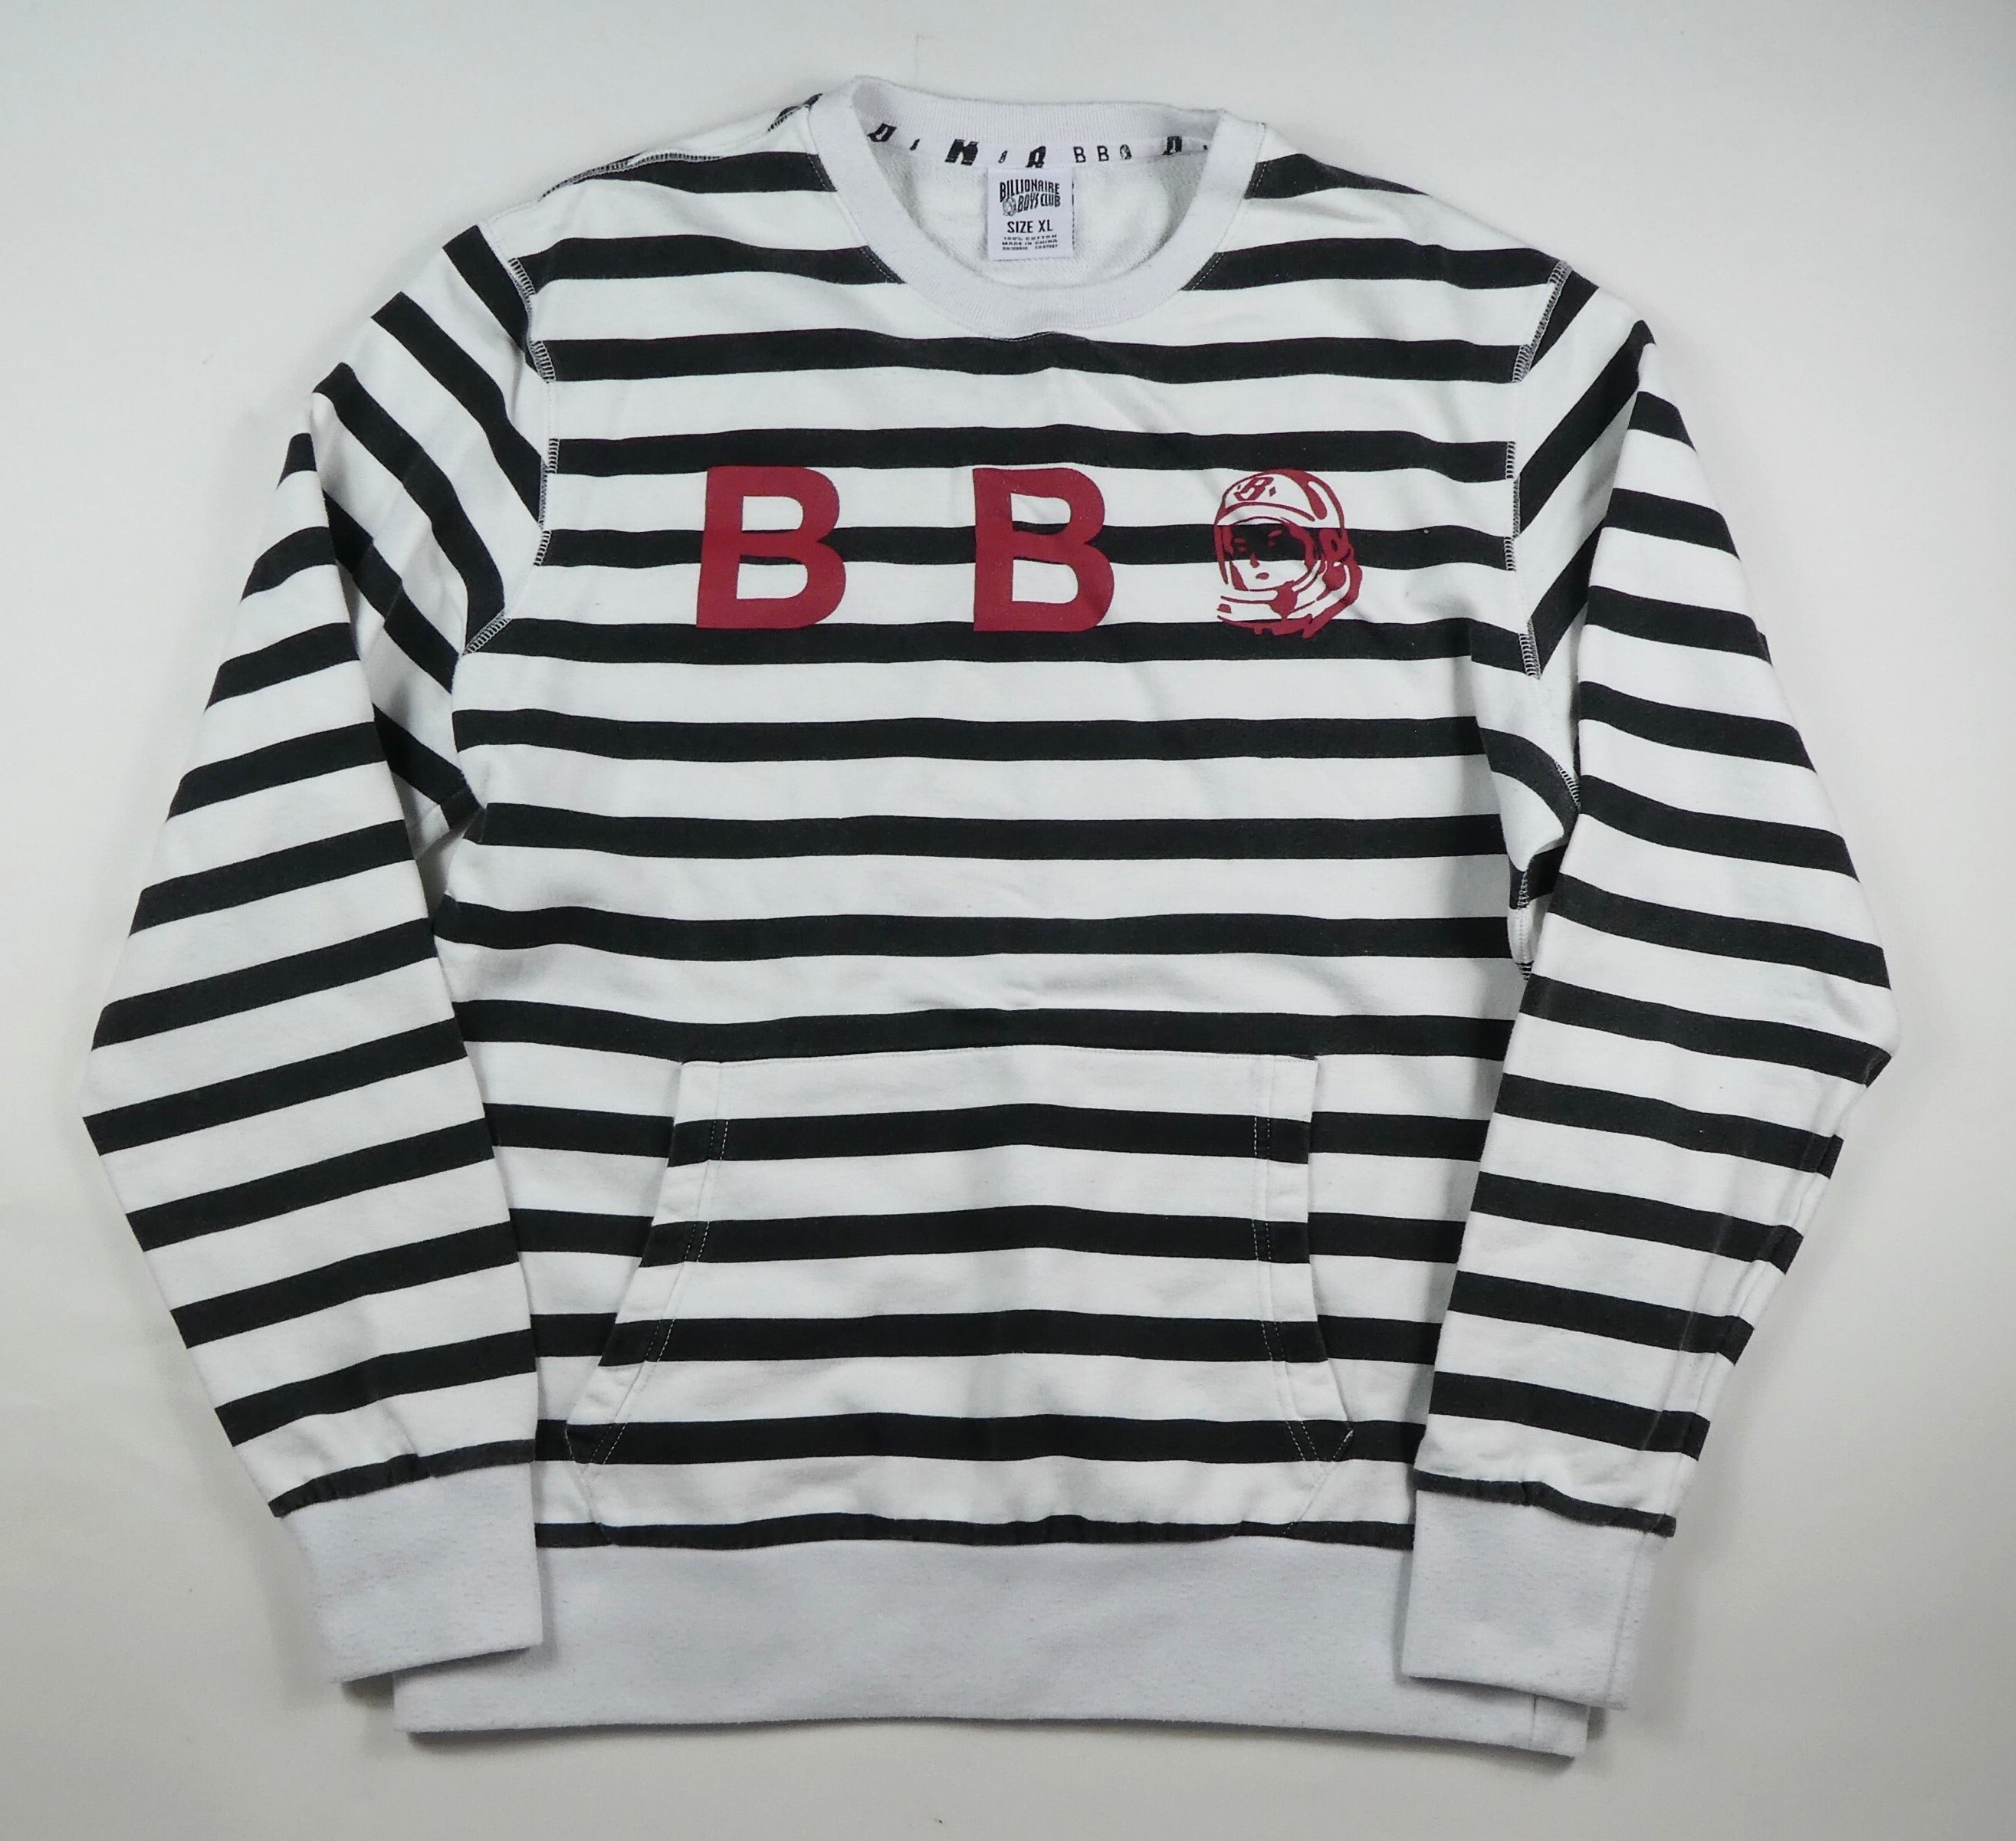 Billionaire Boys Club Striped Sweatshirt - XL